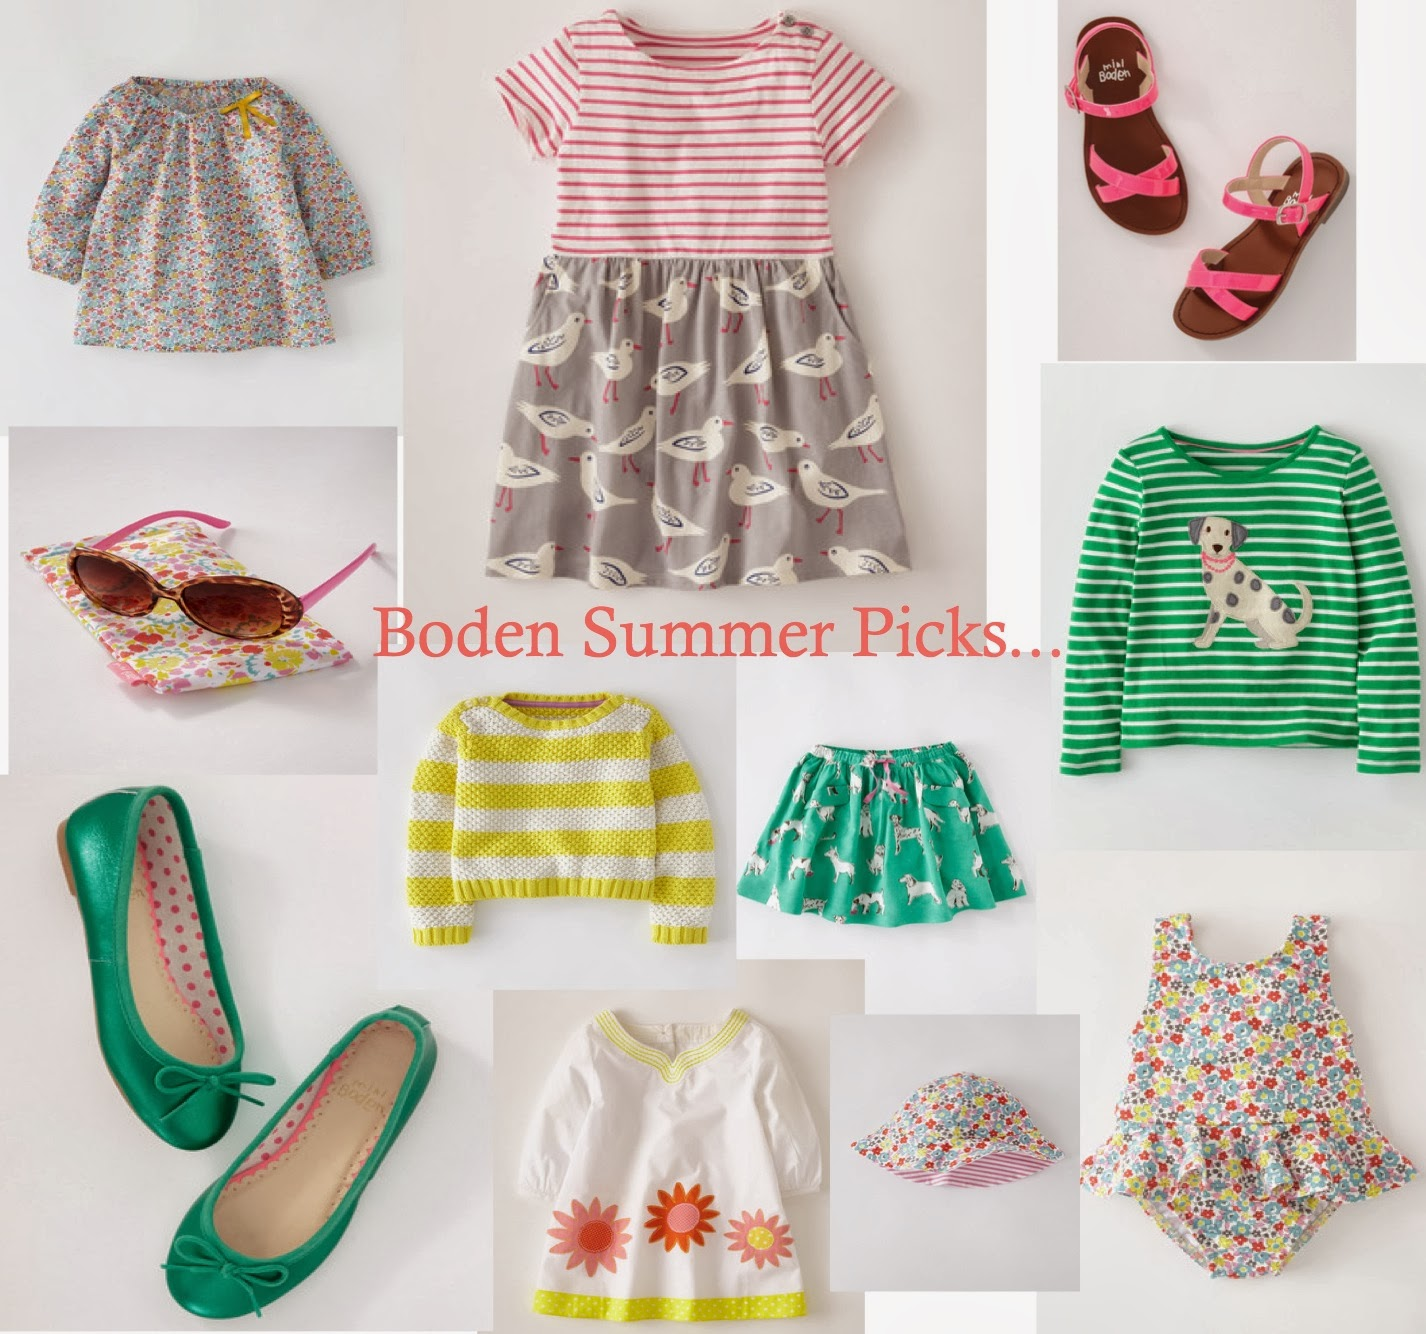 mamasVIB | V. I. BRAND: The most exciting catalogue that lands on my doormat….Hello Boden! |The most exciting catalogue that lands on my doormat | stylish girls clothes } fashion } catalogue finds | Boden |Boden Mini | style for girls | fashionable buys | mamasVIB